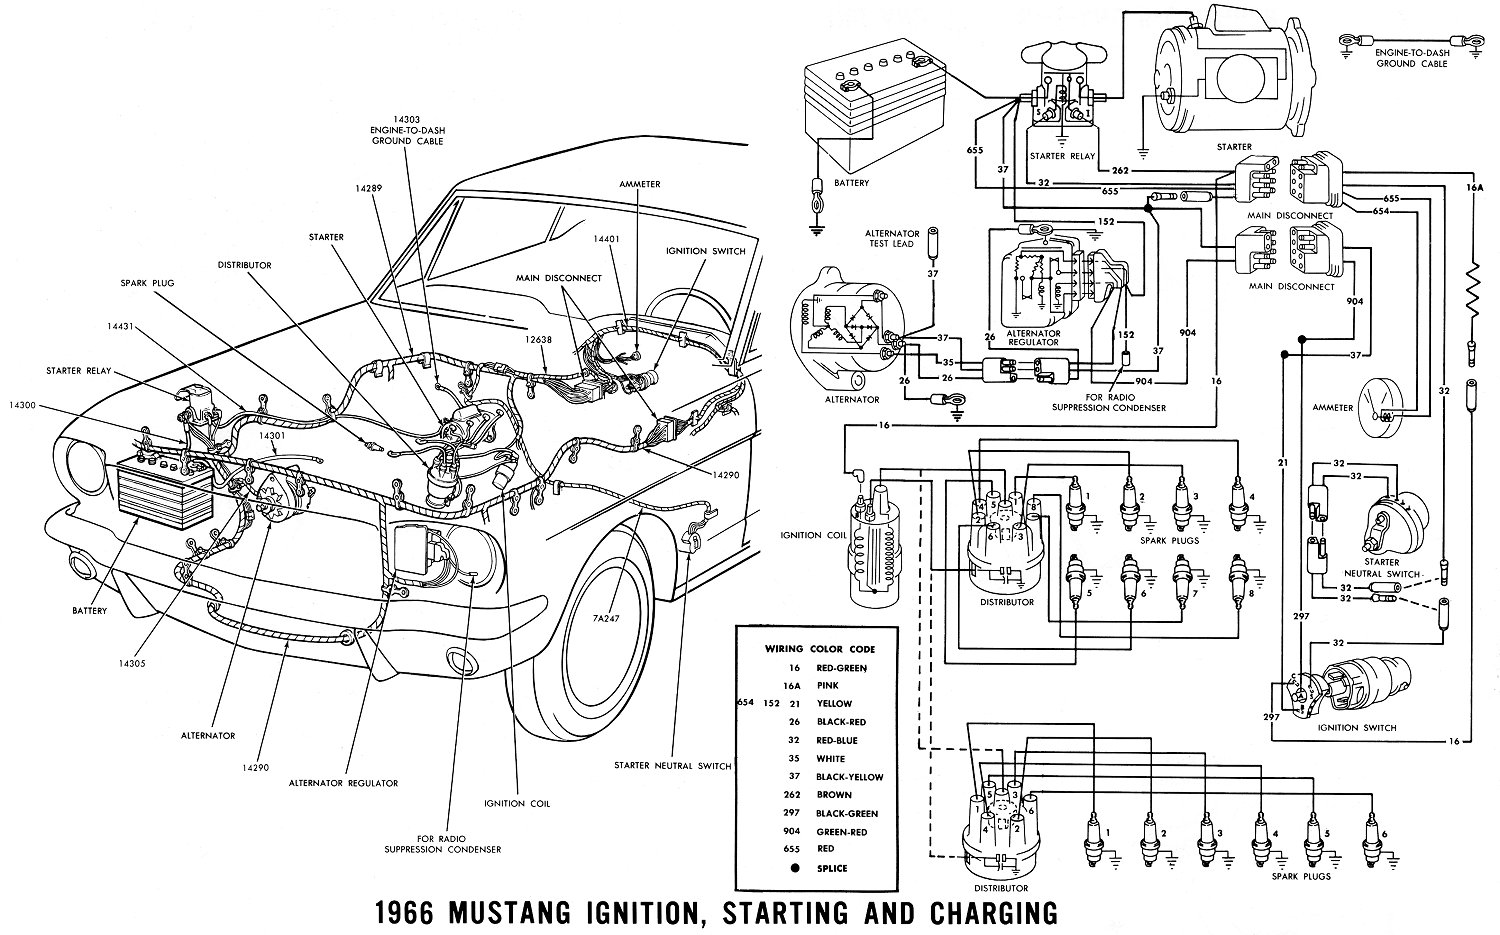 Ignition Switch Wiring Diagram Moreover 1965 Ford Mustang on truck fuel pump wiring diagram likewise corvette